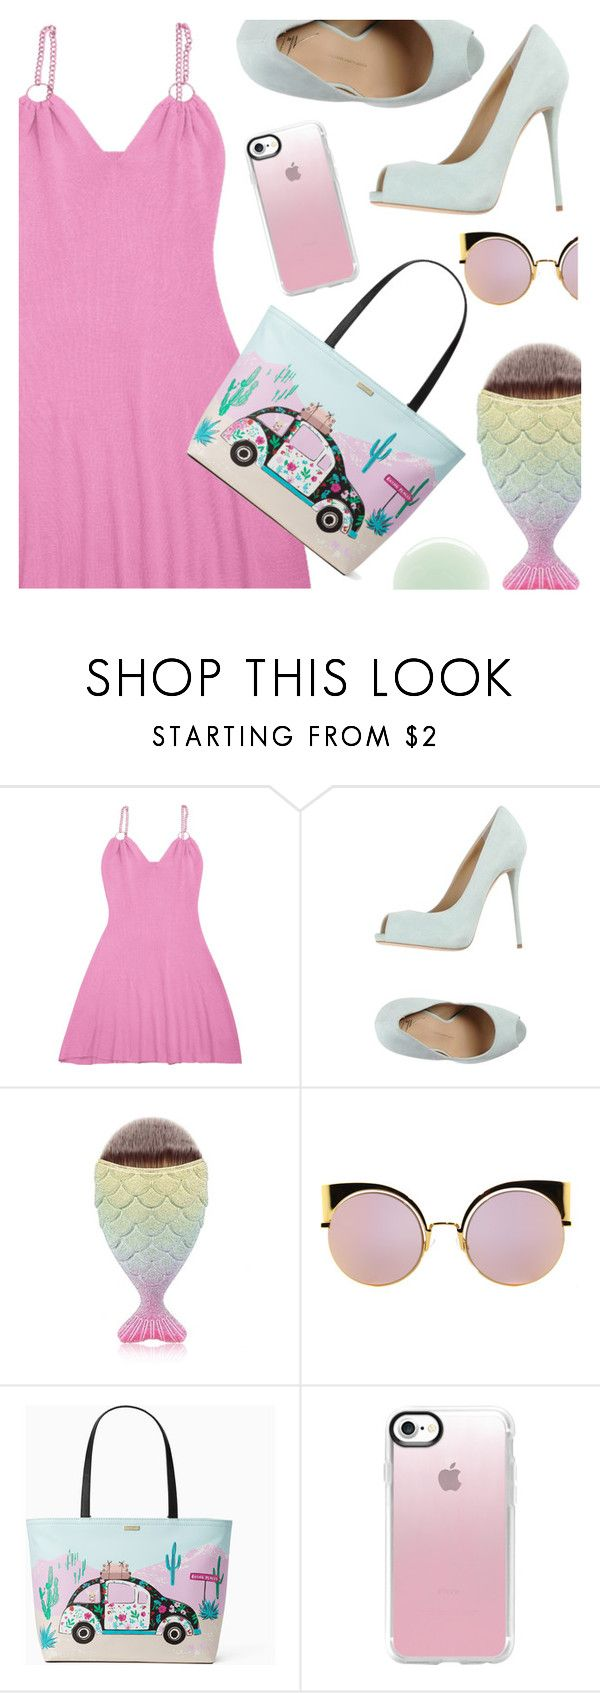 """Untitled #3270"" by deeyanago ❤ liked on Polyvore featuring Giuseppe Zanotti, Fendi, Kate Spade, Casetify and Nails Inc."